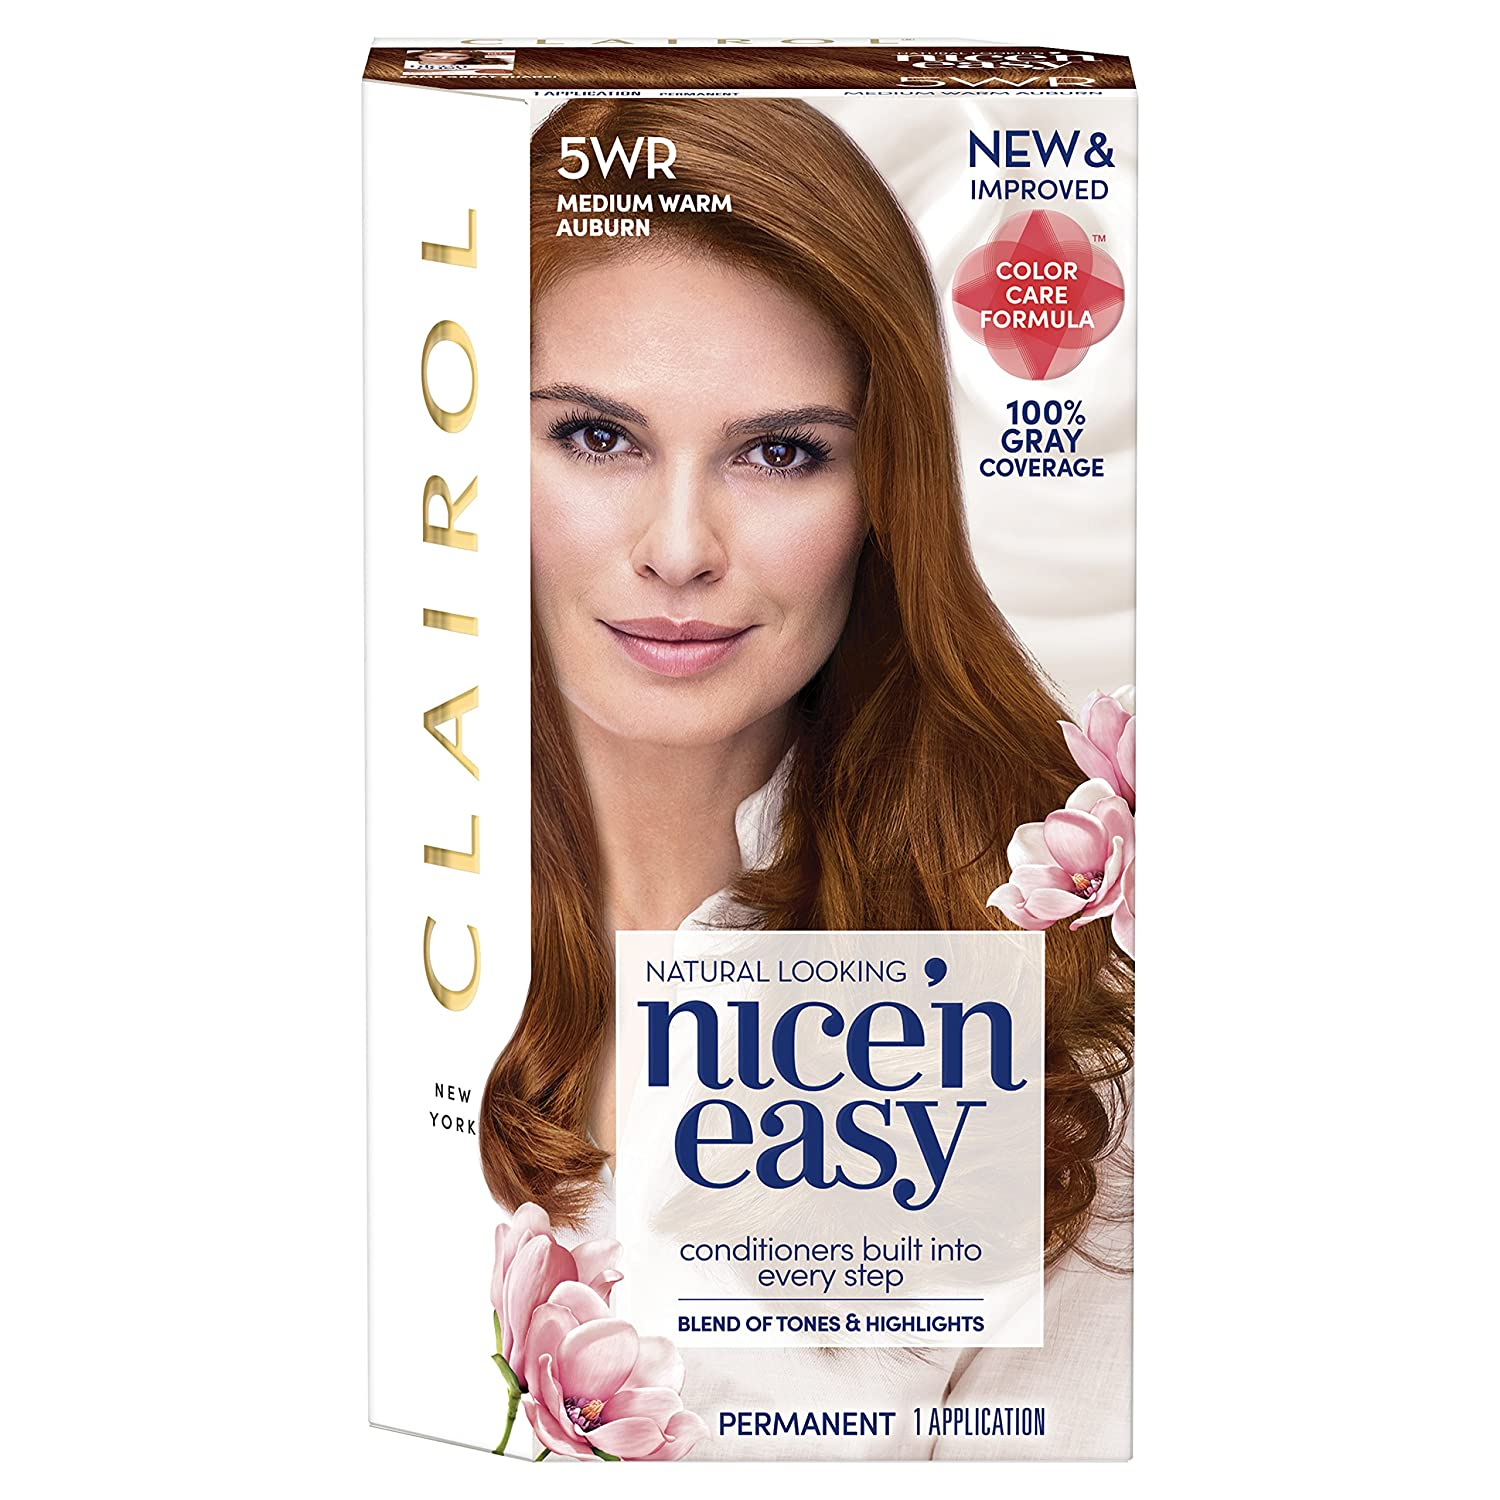 Clairol Nice'n Easy Permanent Hair Dye 5WR H Auburn Medium Warm Ranking All stores are sold TOP5